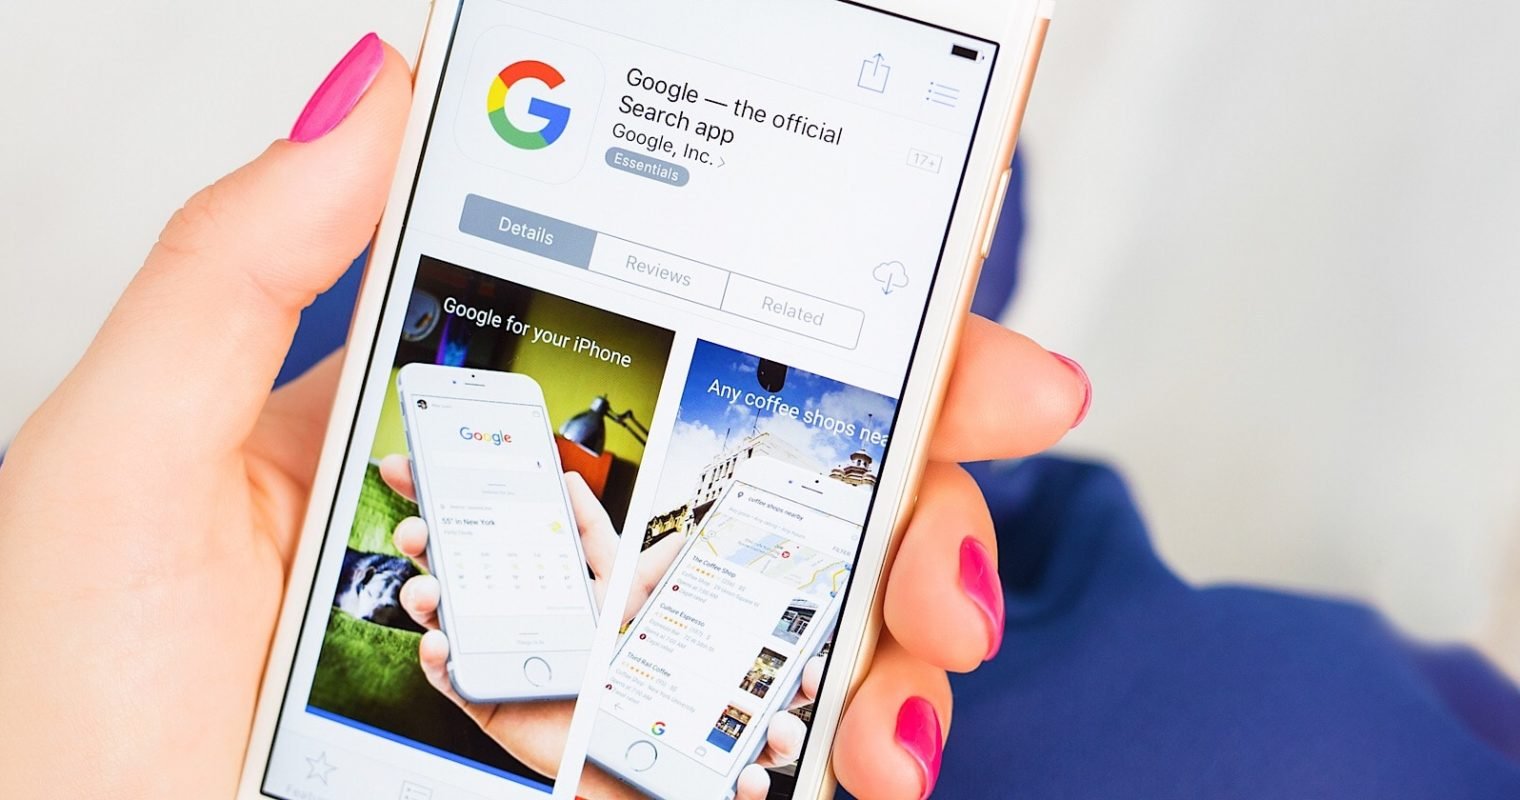 Google's iOS App Can Now Filter Search Results by Date